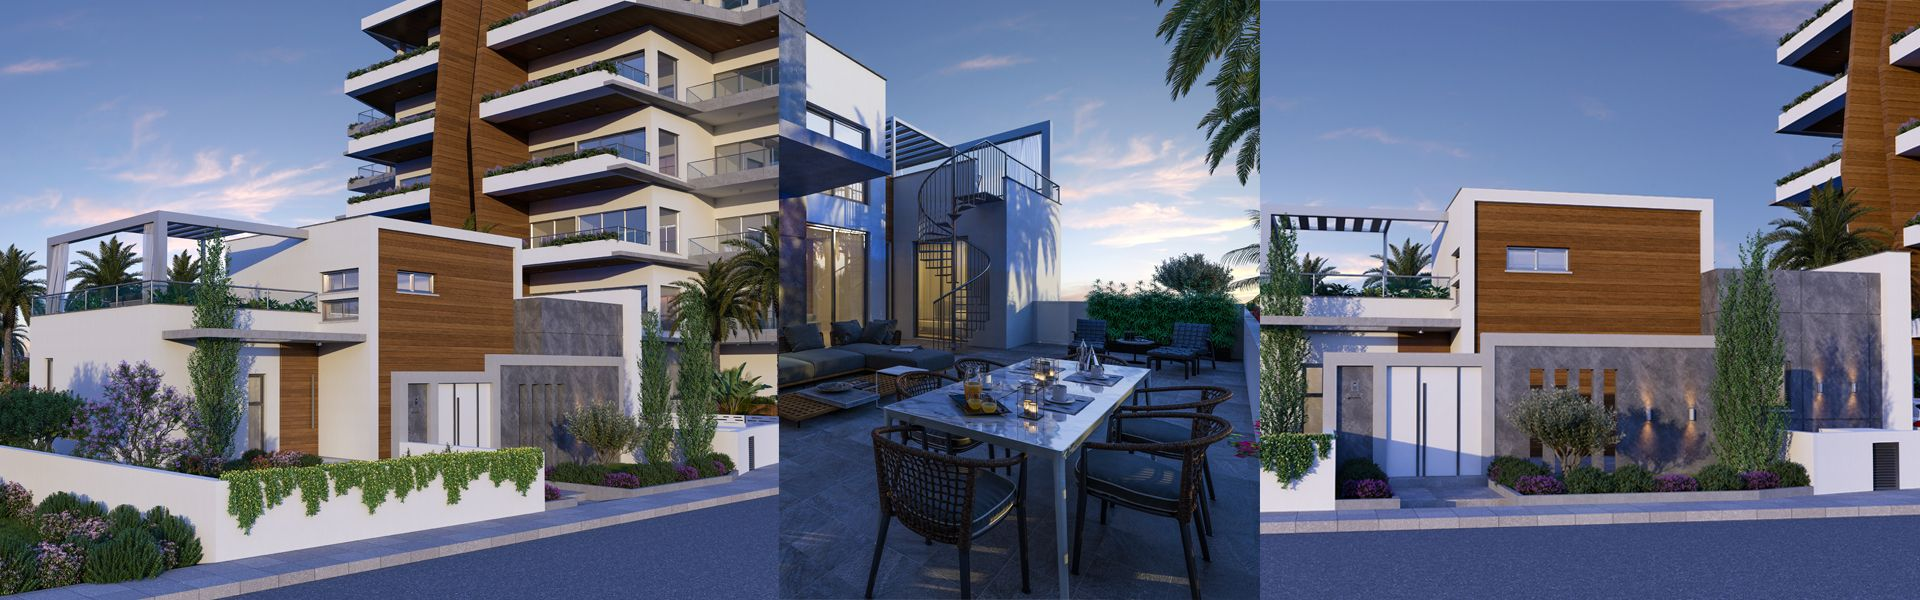 residential-house-germasoyeia-tourist-area-limassol